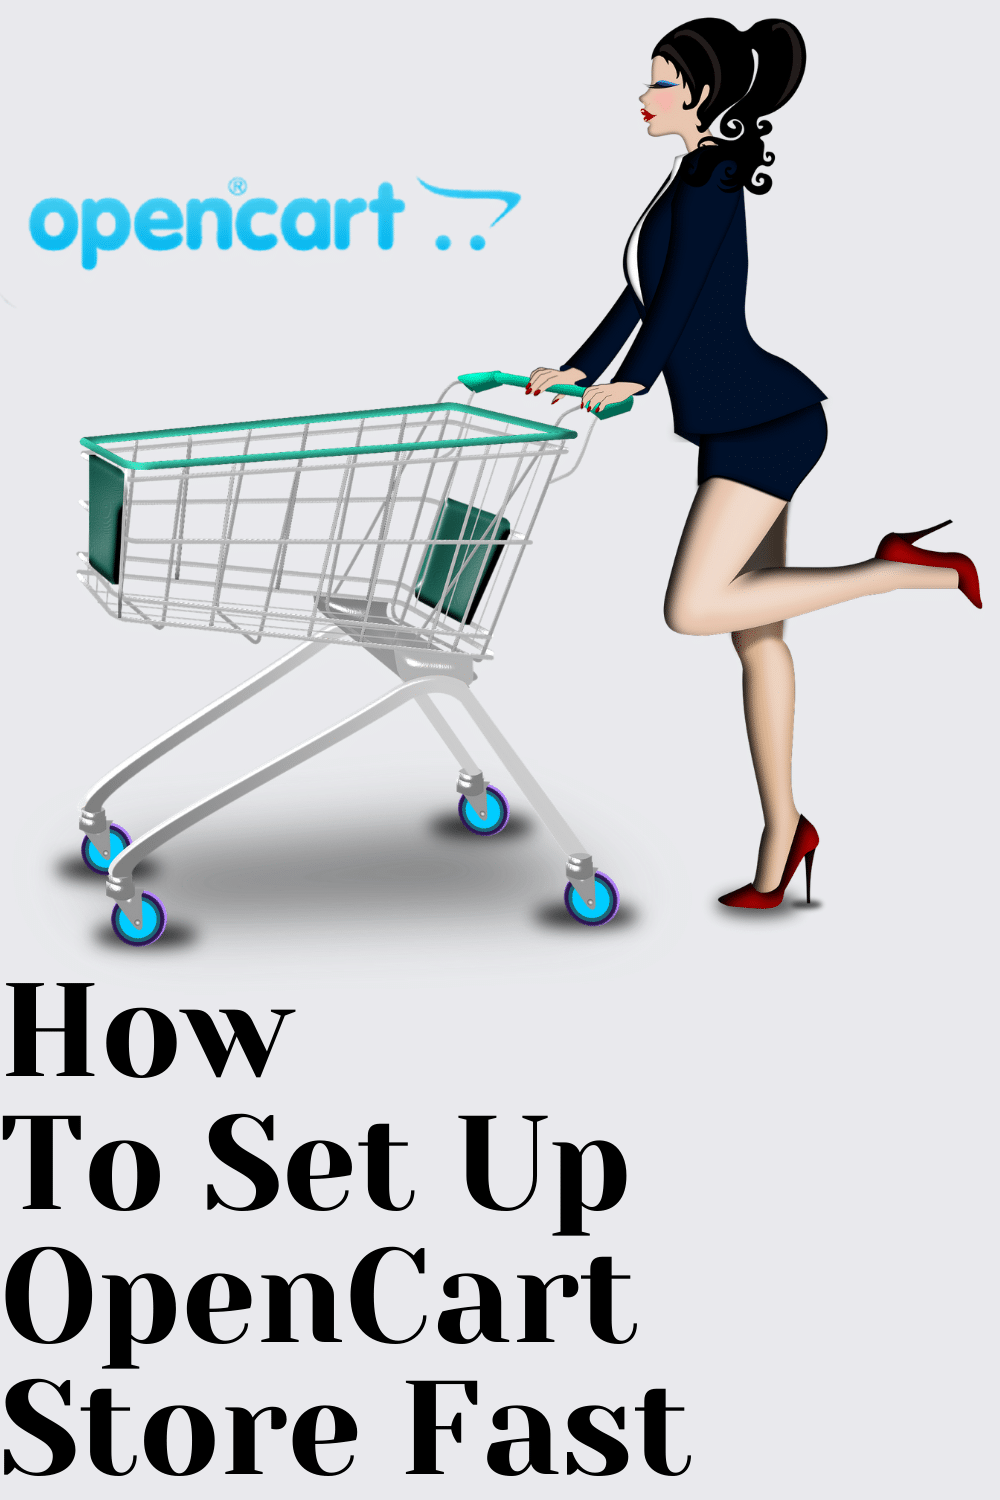 How To Set Up OpenCart Store Fast! Step-by-Step Beginners Guide